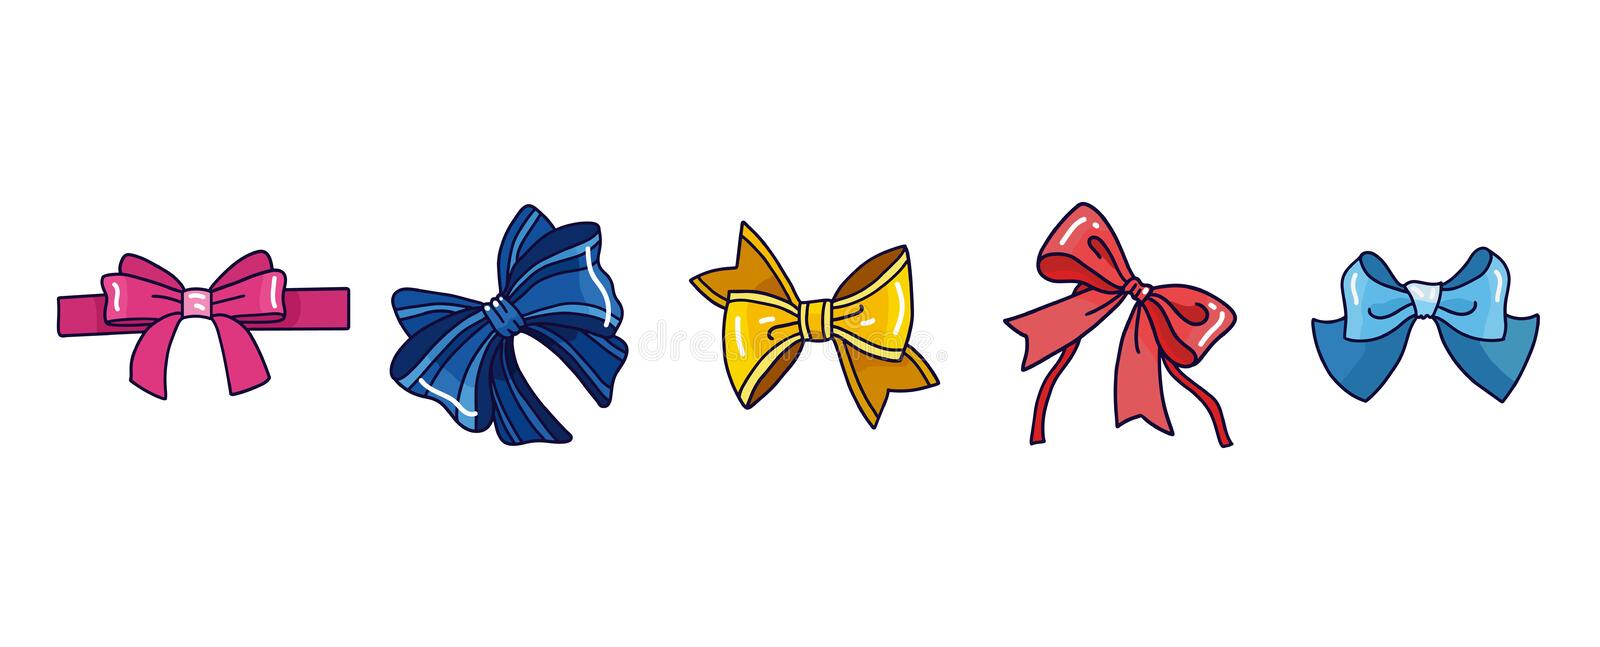 Set of different bows and ribbon knots. Hand drawn isolated royalty free stock images